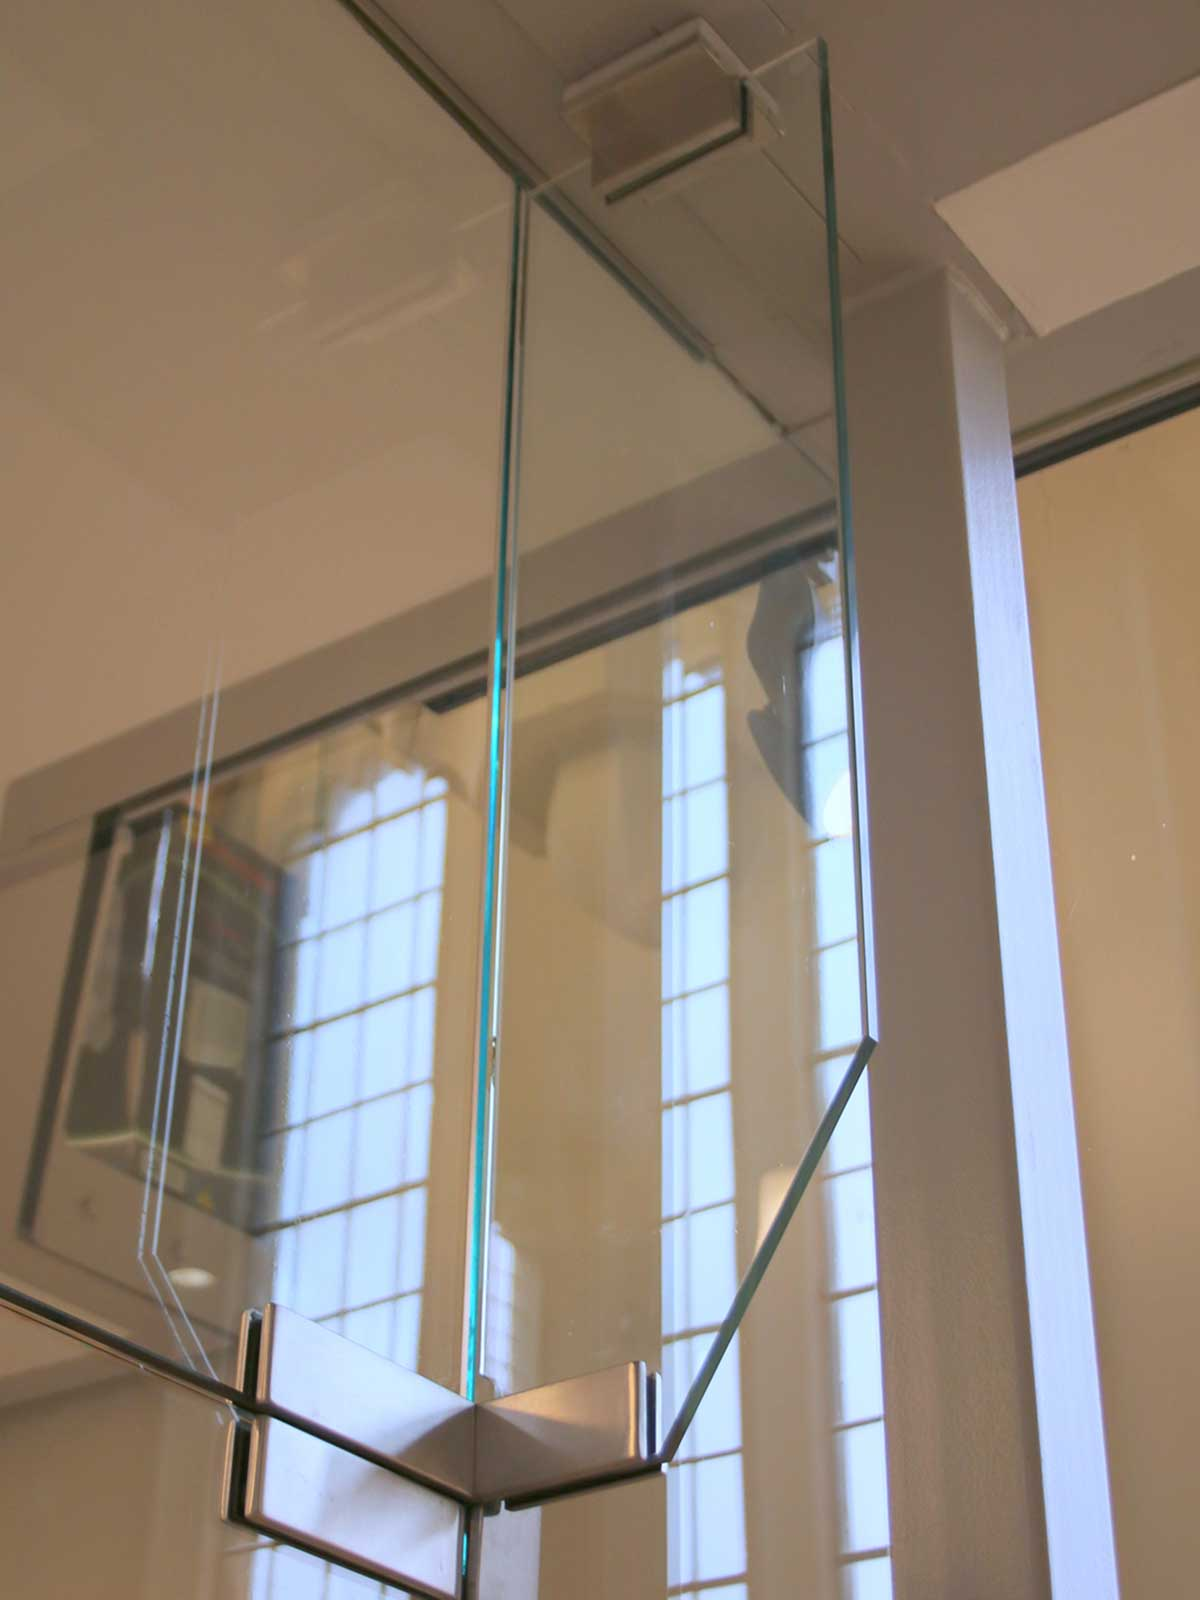 Structural Glass Fin, Bespoke Glass Installation with Brackets